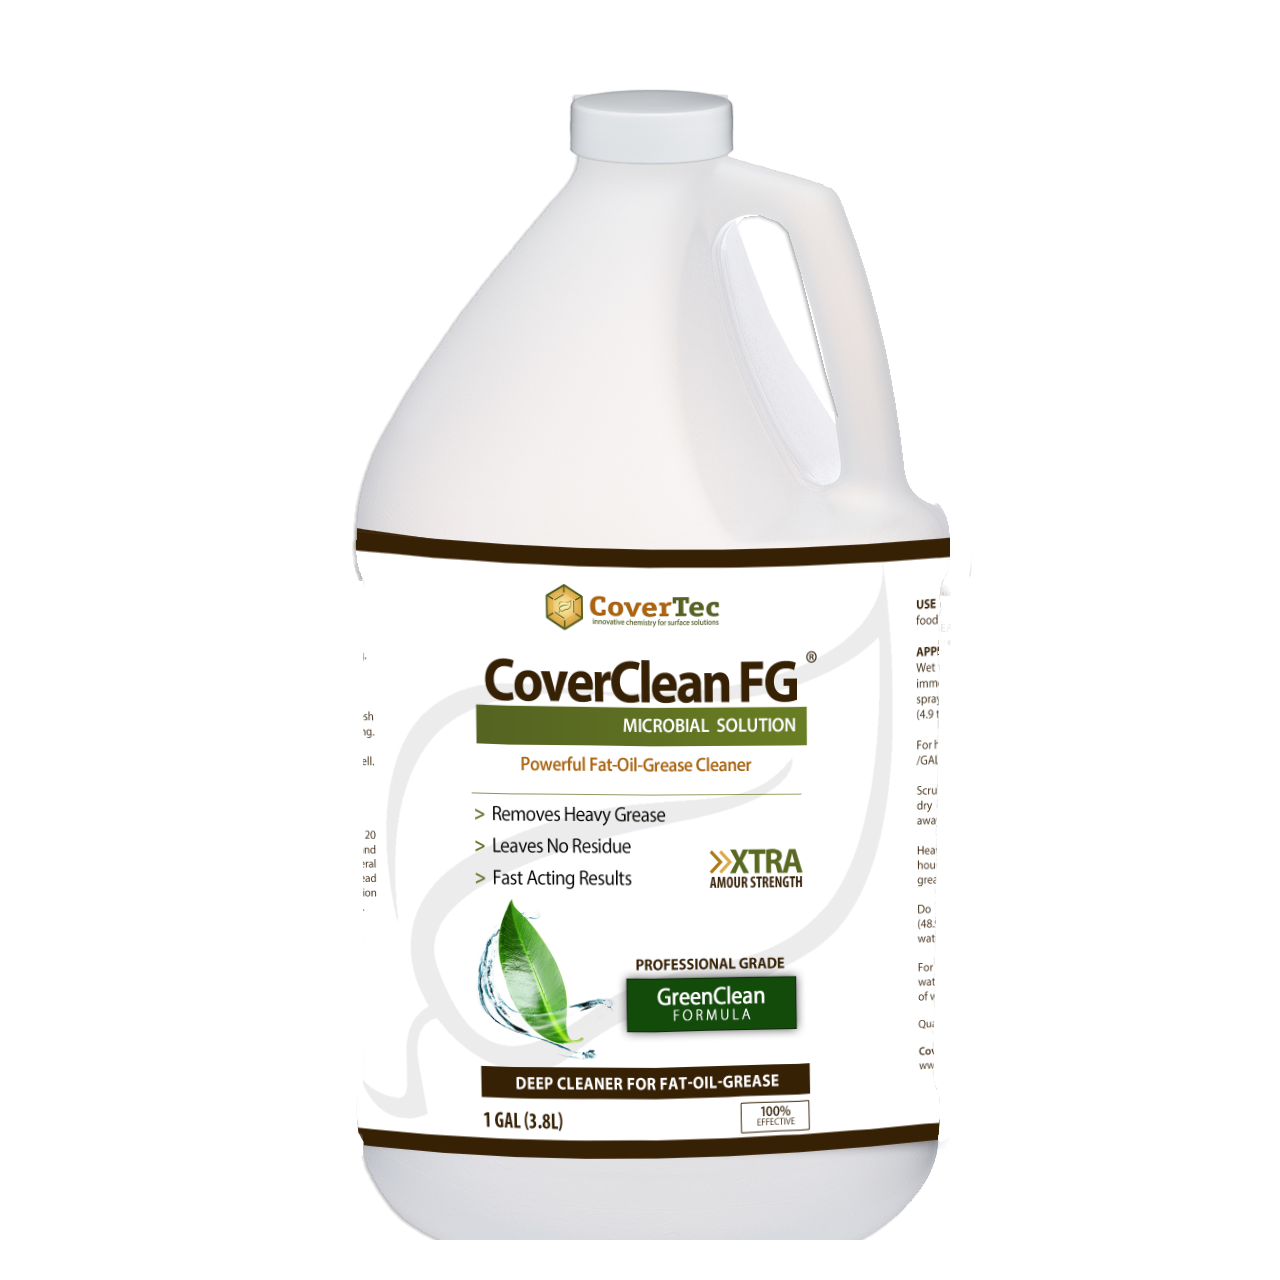 CoverClean FG Microbial Cleaner For Fat, Food, Oil & Grease